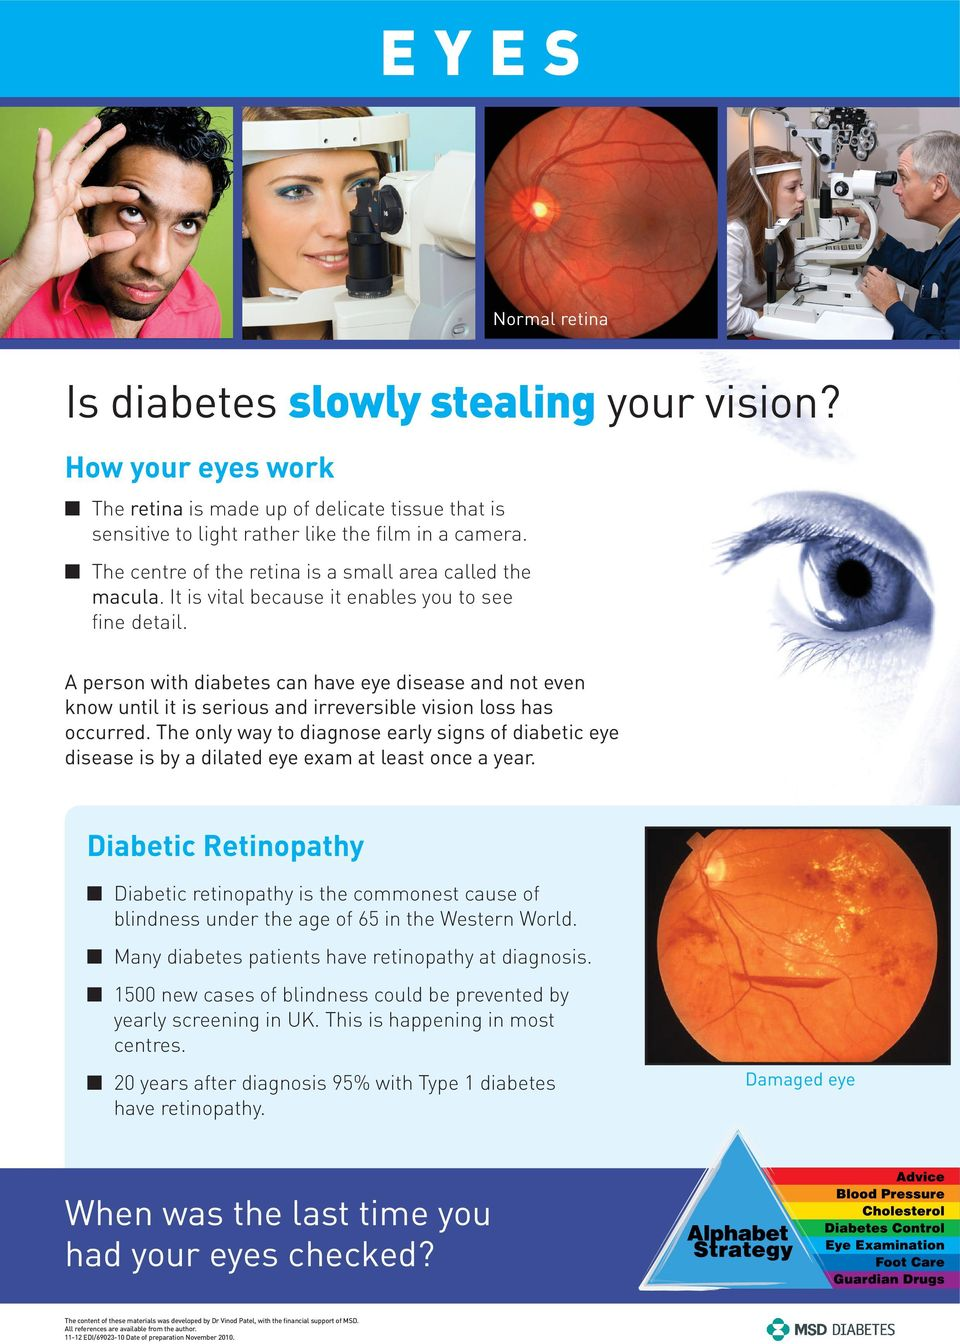 A person with diabetes can have eye disease and not even know until it is serious and irreversible vision loss has occurred.